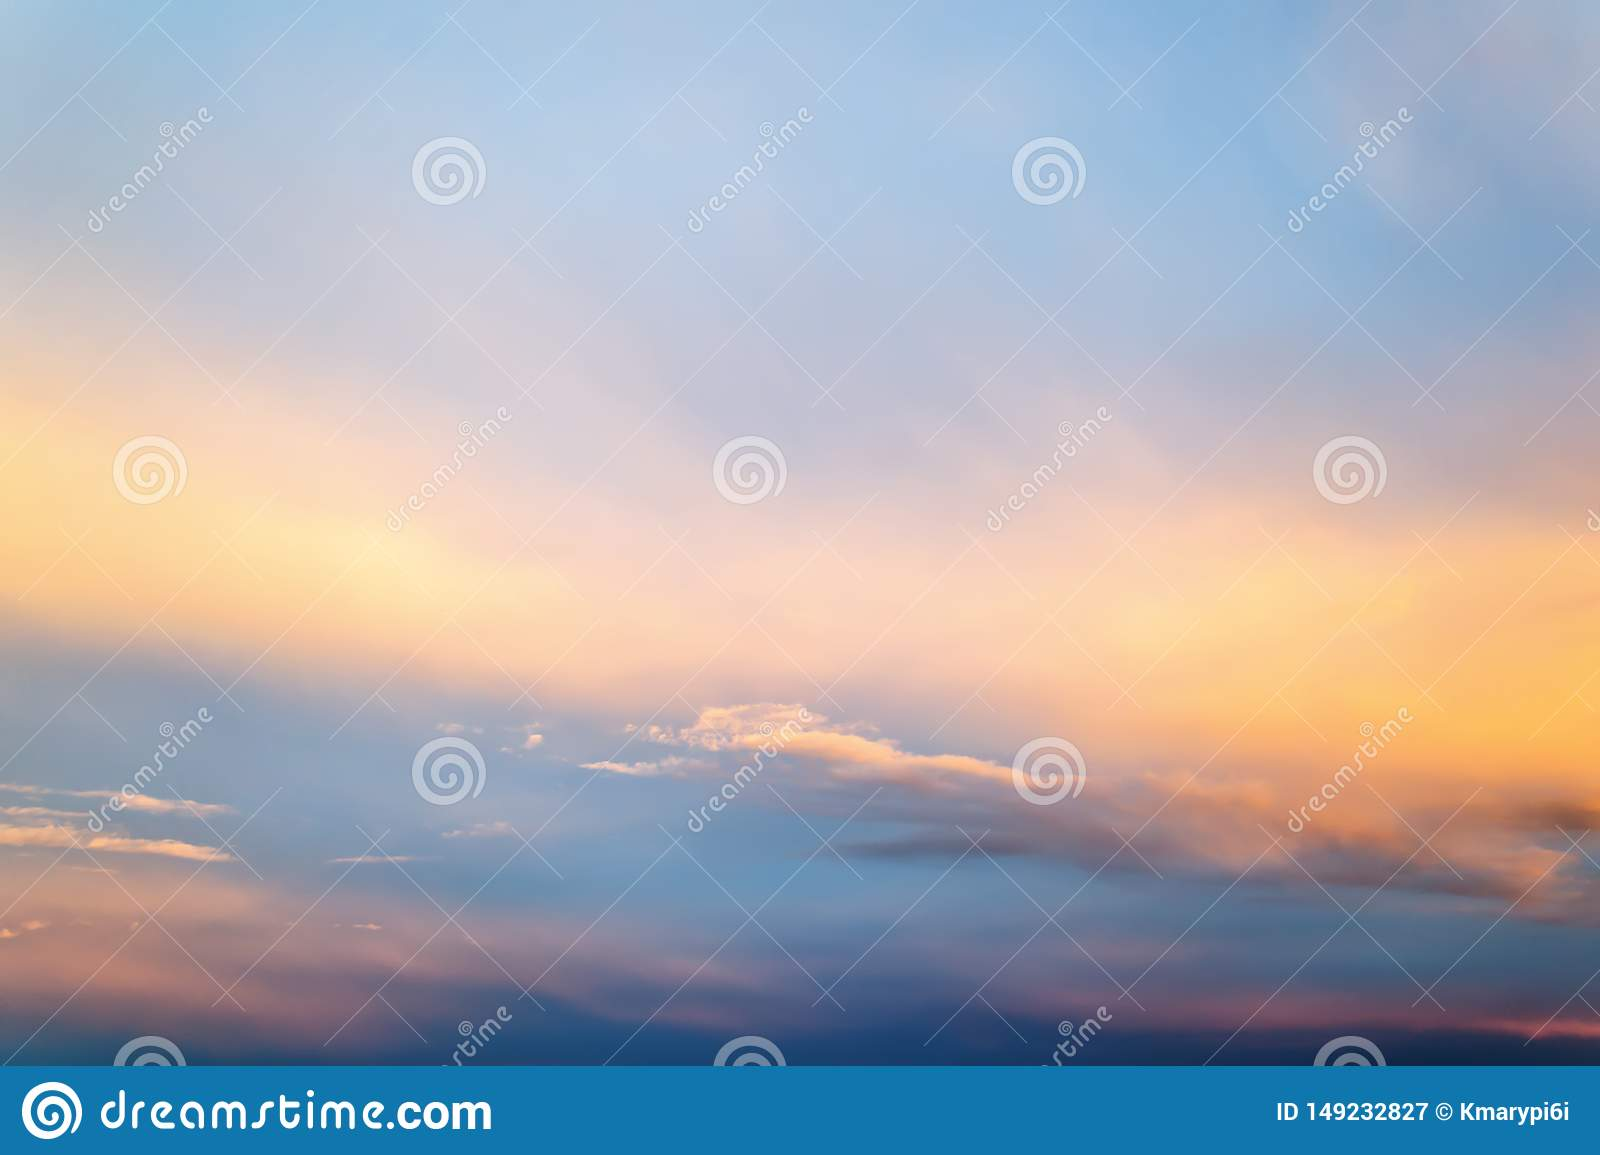 Beautifull skyscape at evening. Blue clear sunset sky with white and orange clouds. Calm background